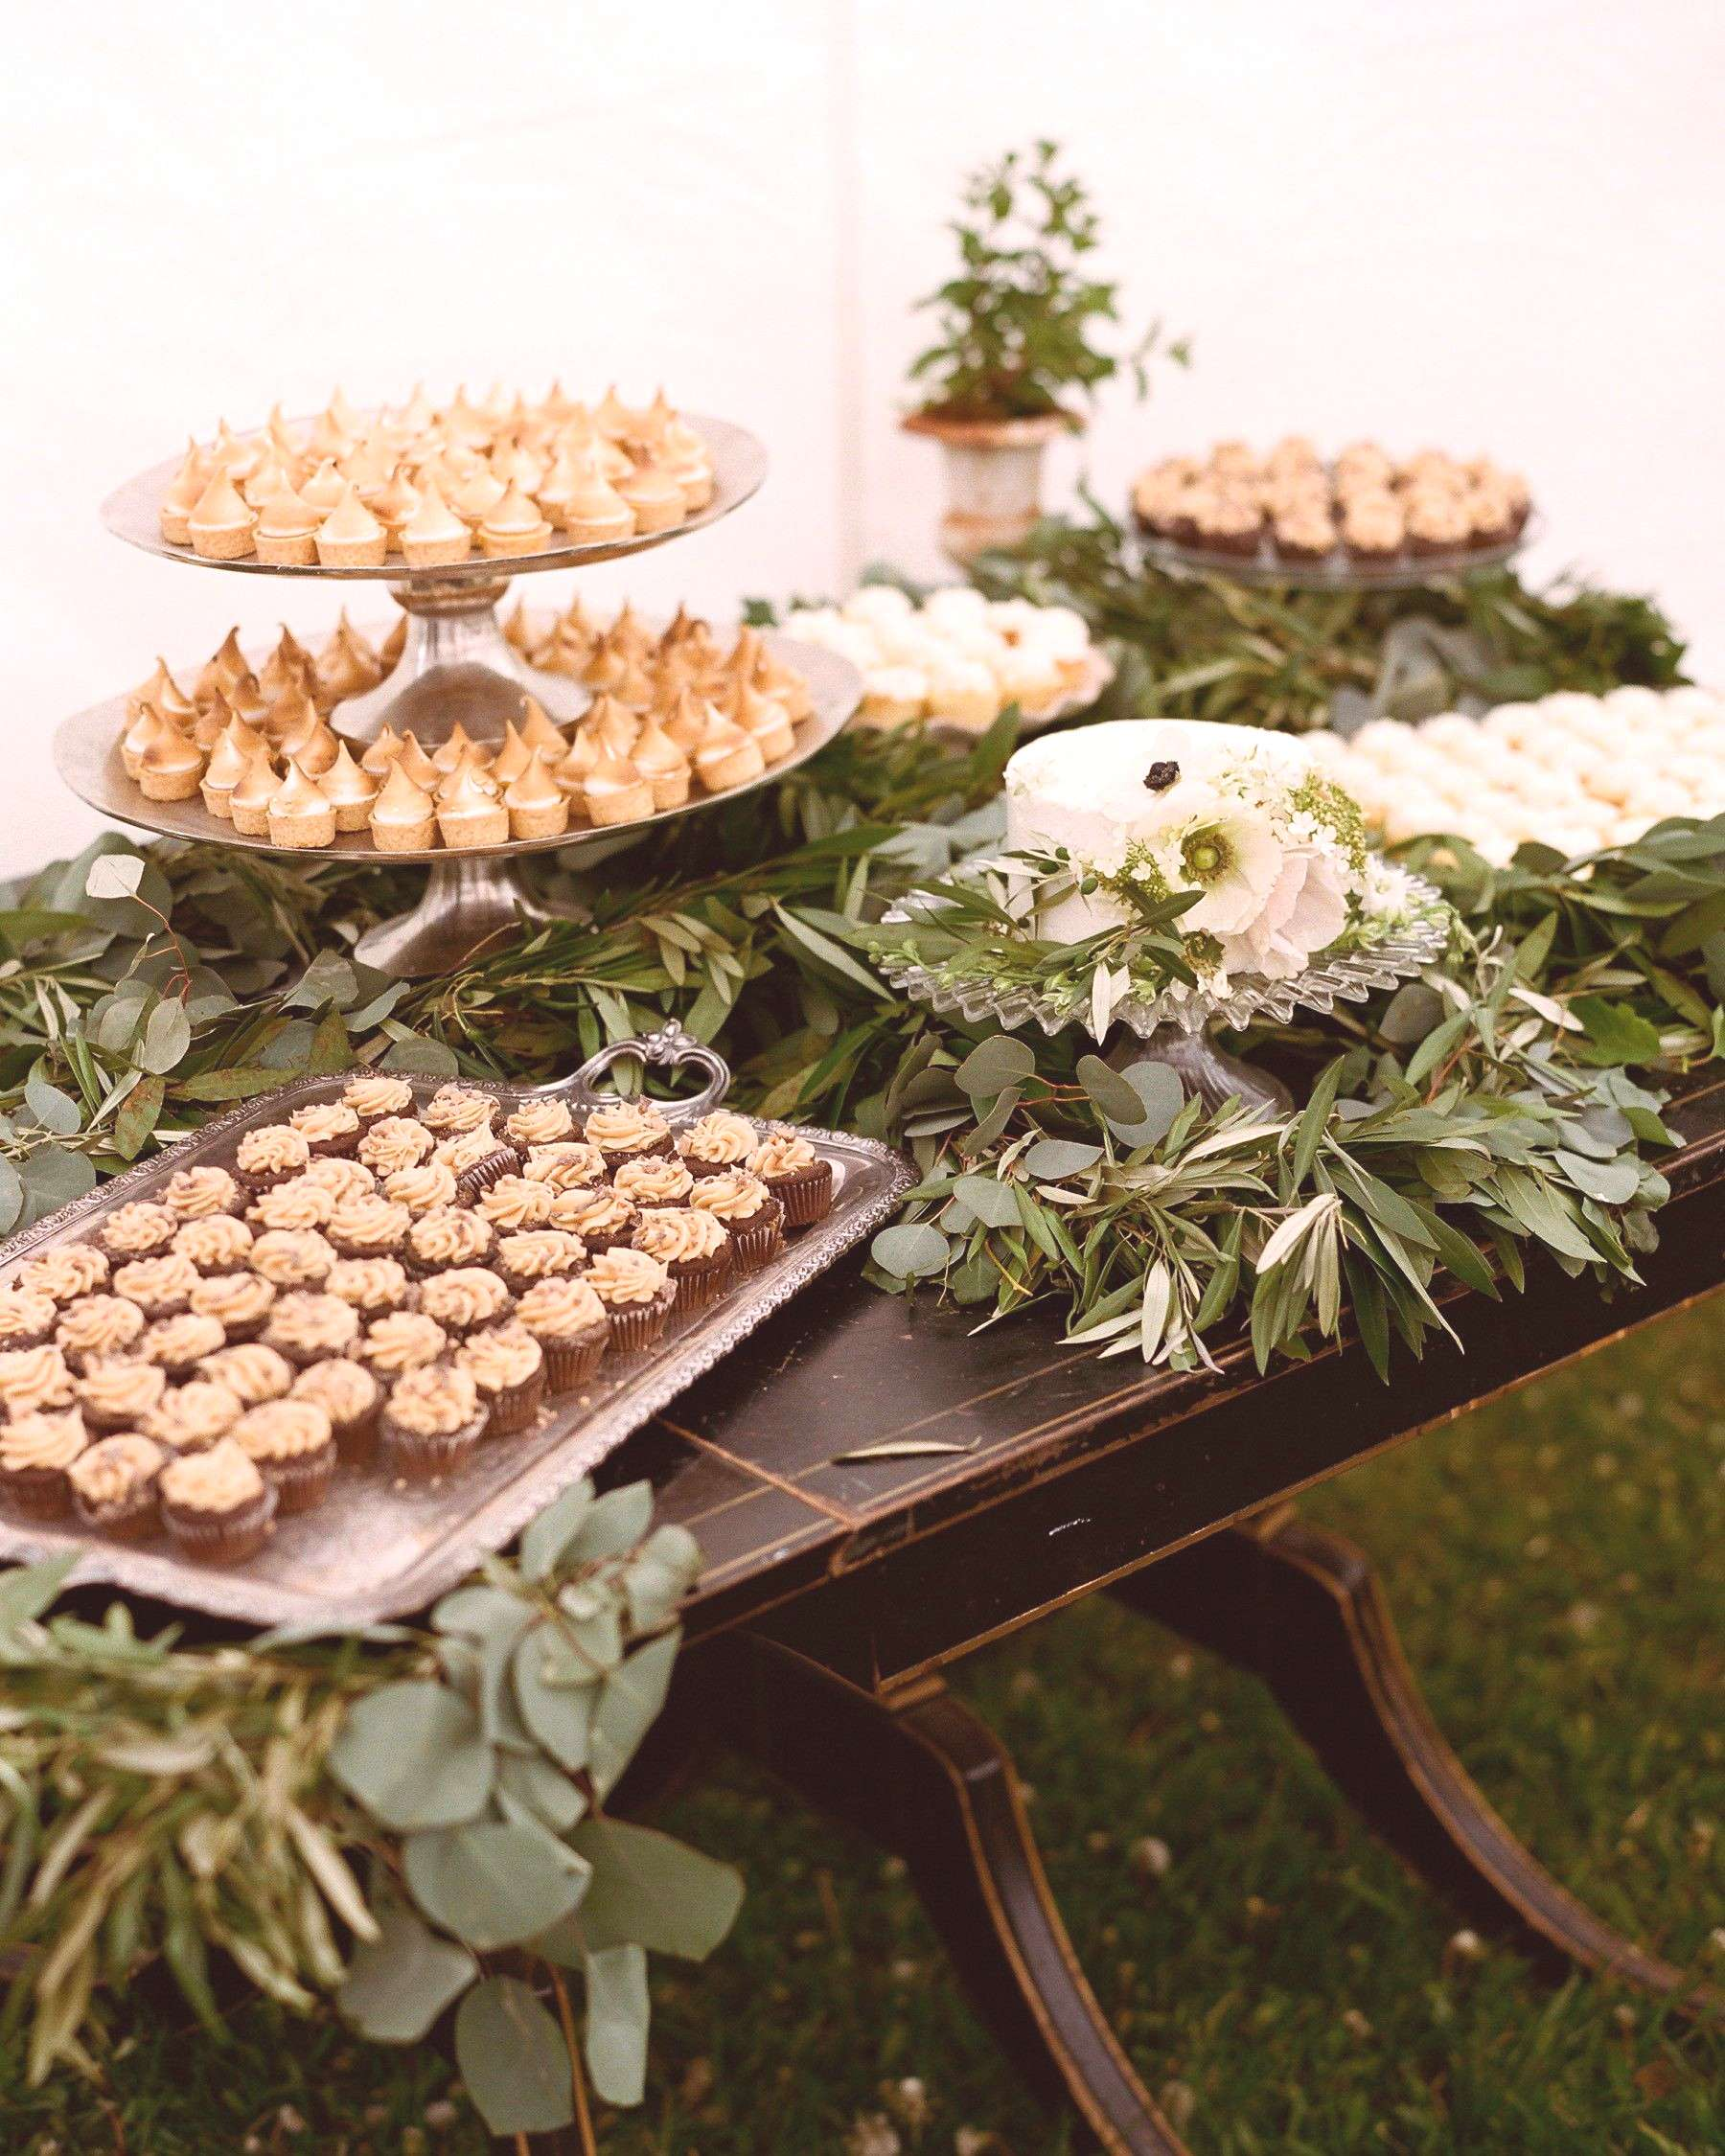 We've rounded up some of our favorite dessert table ideas from real weddings to help you find all t